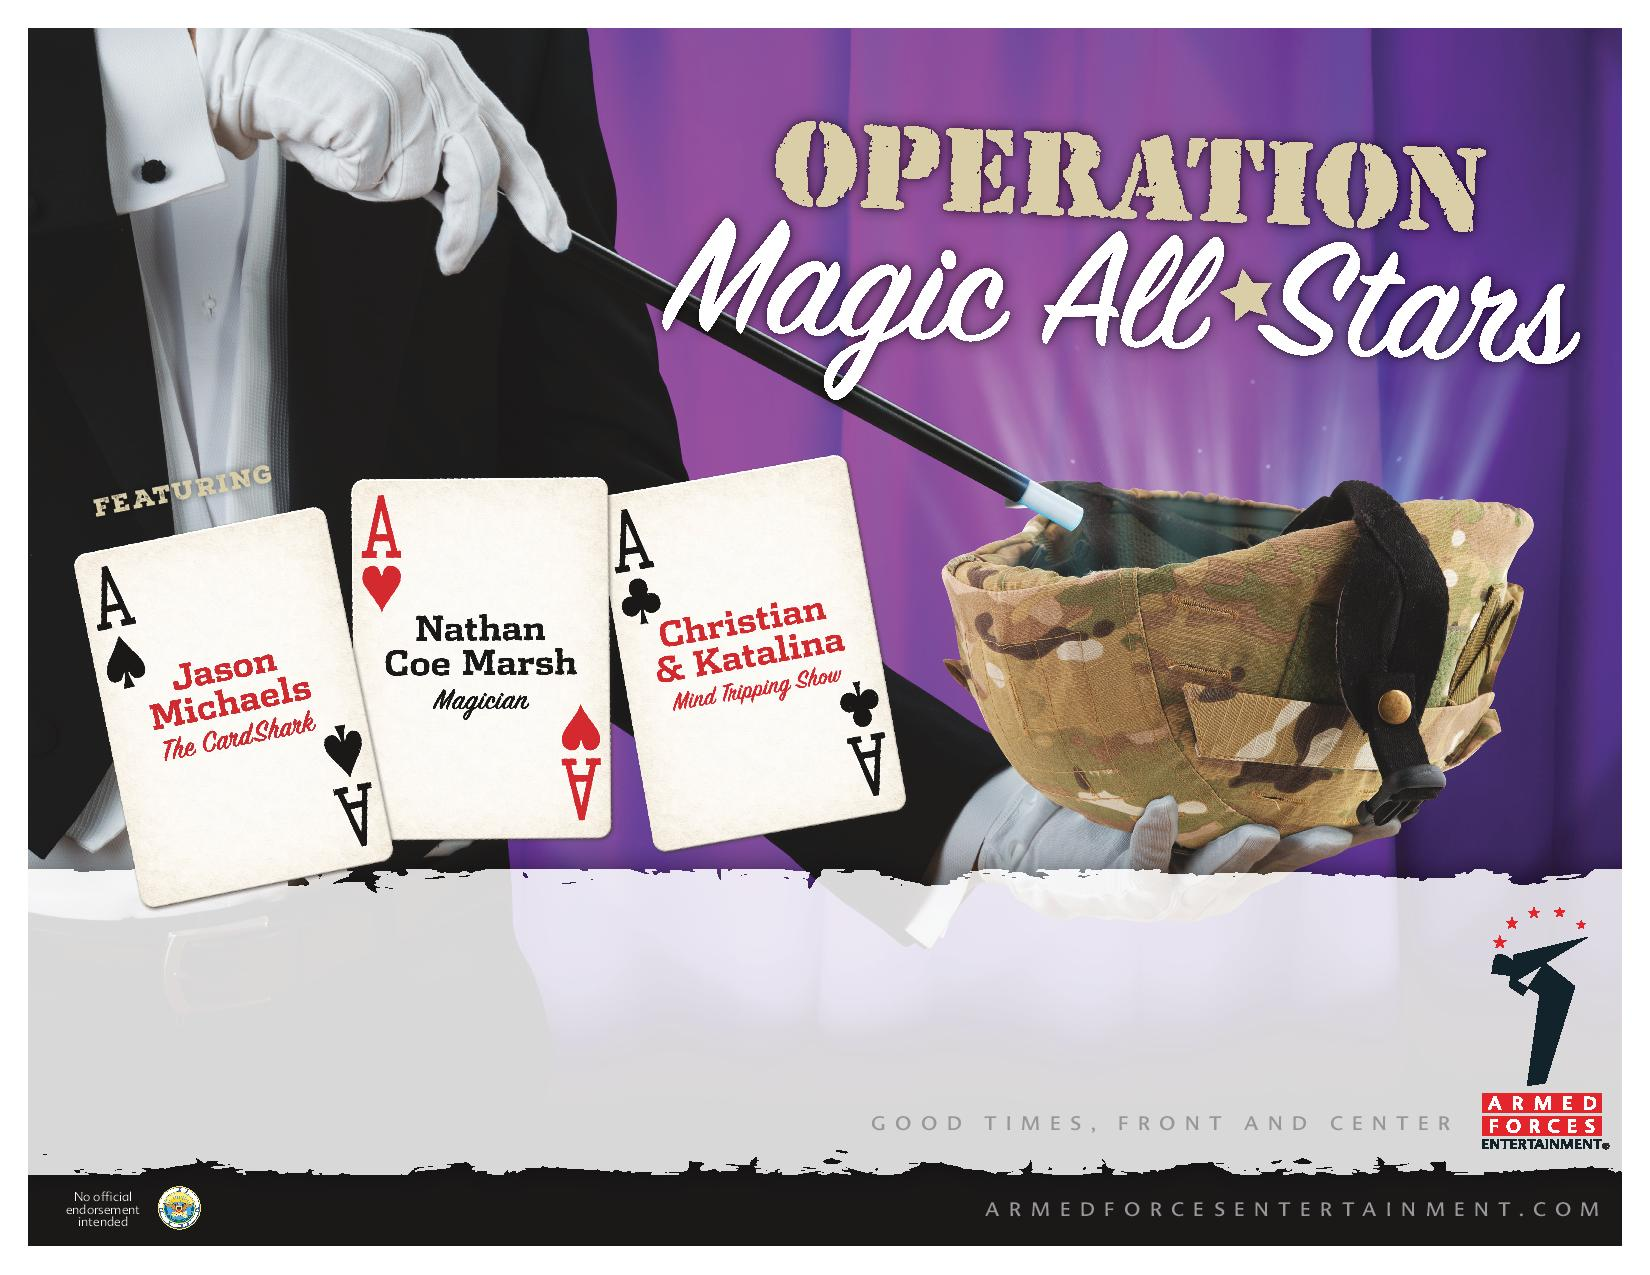 3015AFE-OperationMagicAllStars-HorizLetter-HR-page-001.jpg